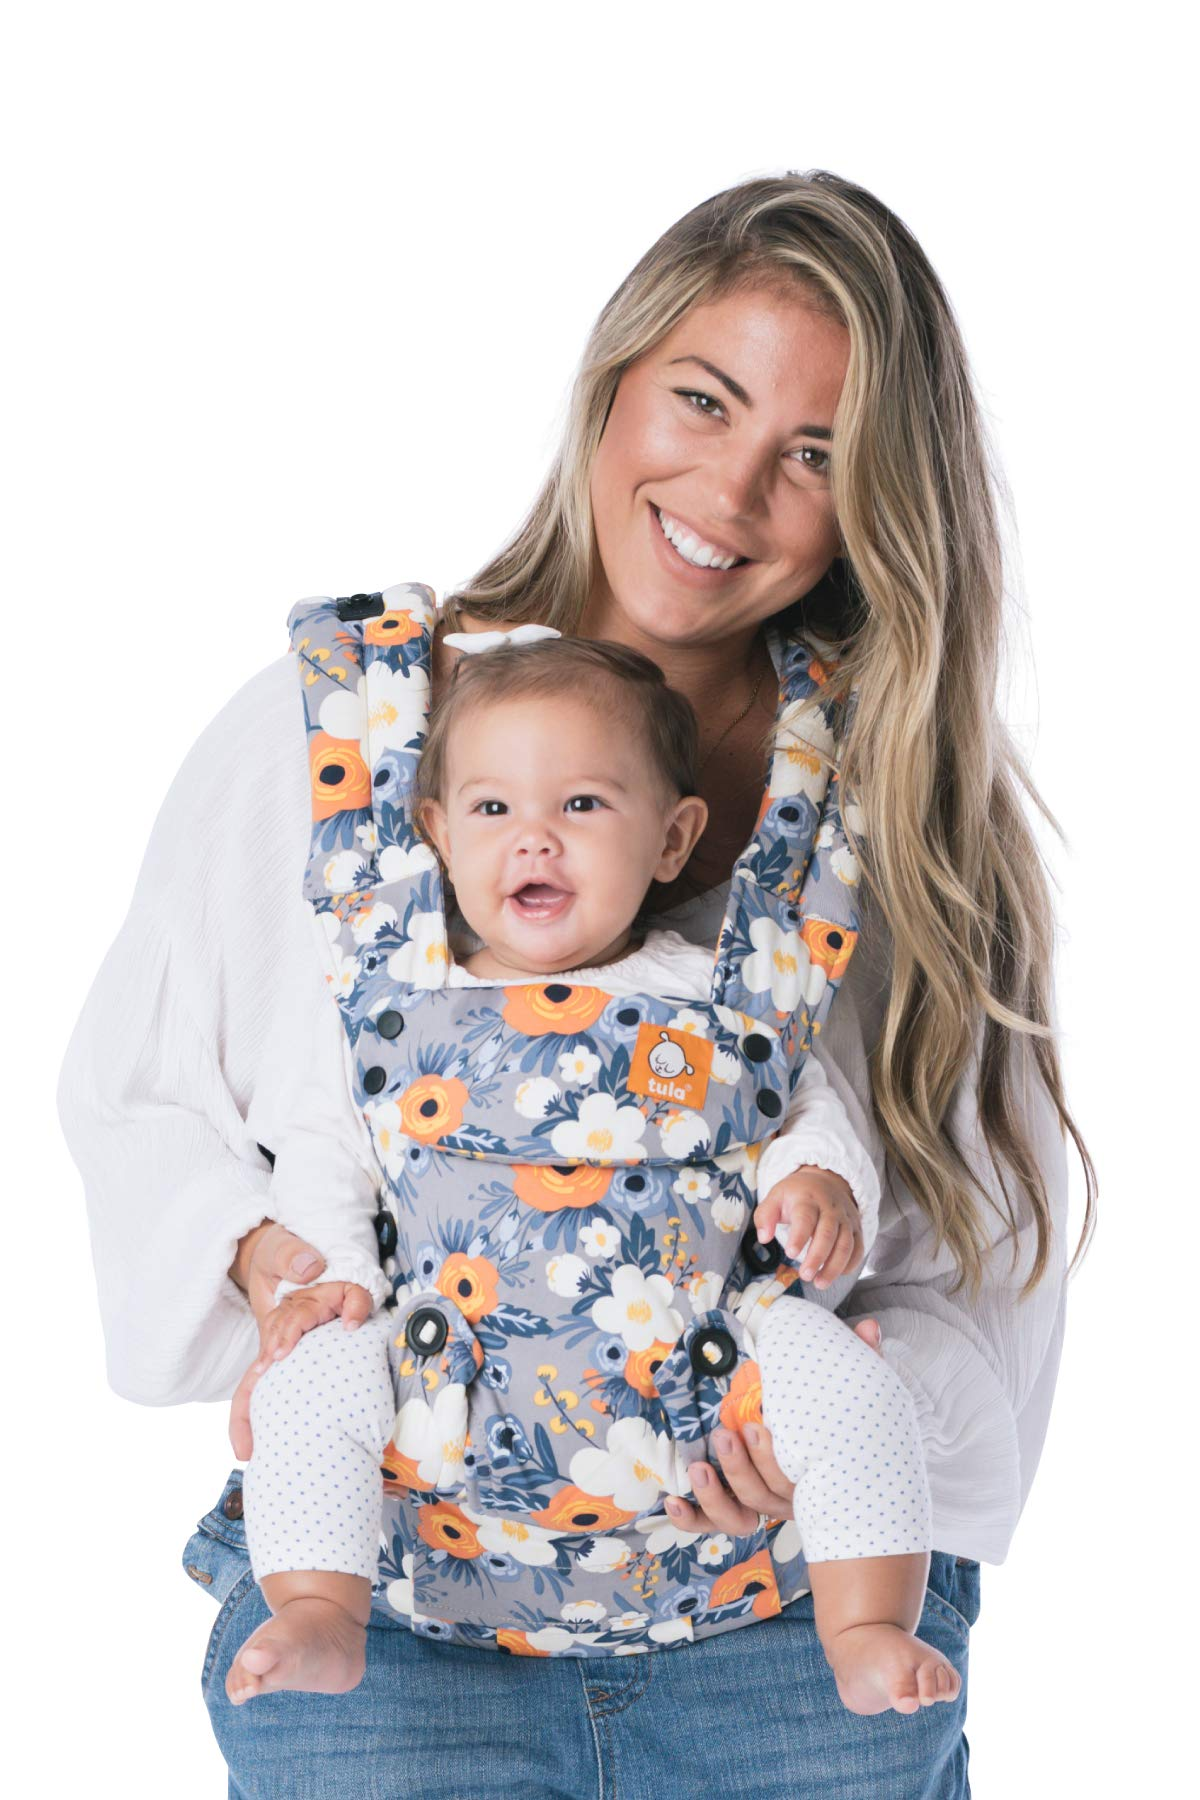 Baby Tula Explore Baby Carrier 3.2 - 20.4 kg, Adjustable Newborn to Toddler Carrier, Multiple Ergonomic Positions, Front and Back Carry, Easy-to-Use, Lightweight - French Marigold, Blue-Gray Floral Tula EVERY CARRY POSITION YOUR BABY WILL NEED, INCLUDING OUTWARD FACING: Multiple positions to carry baby including front facing out*, facing in, and back carry. Each position provides a natural, ergonomic position best for comfortable carrying that promotes healthy hip and spine development for baby. INNOVATIVE BODY PANEL WITH AN EASY-TO-ADJUST DESIGN: Adjusts in three width settings to find a perfect fit as baby grows from newborn to early toddlerhood. PADDED, ADJUSTABLE NECK SUPPORT PILLOW: Can be used in multiple positions to provide head and neck support for newborns and sleeping babies. 1